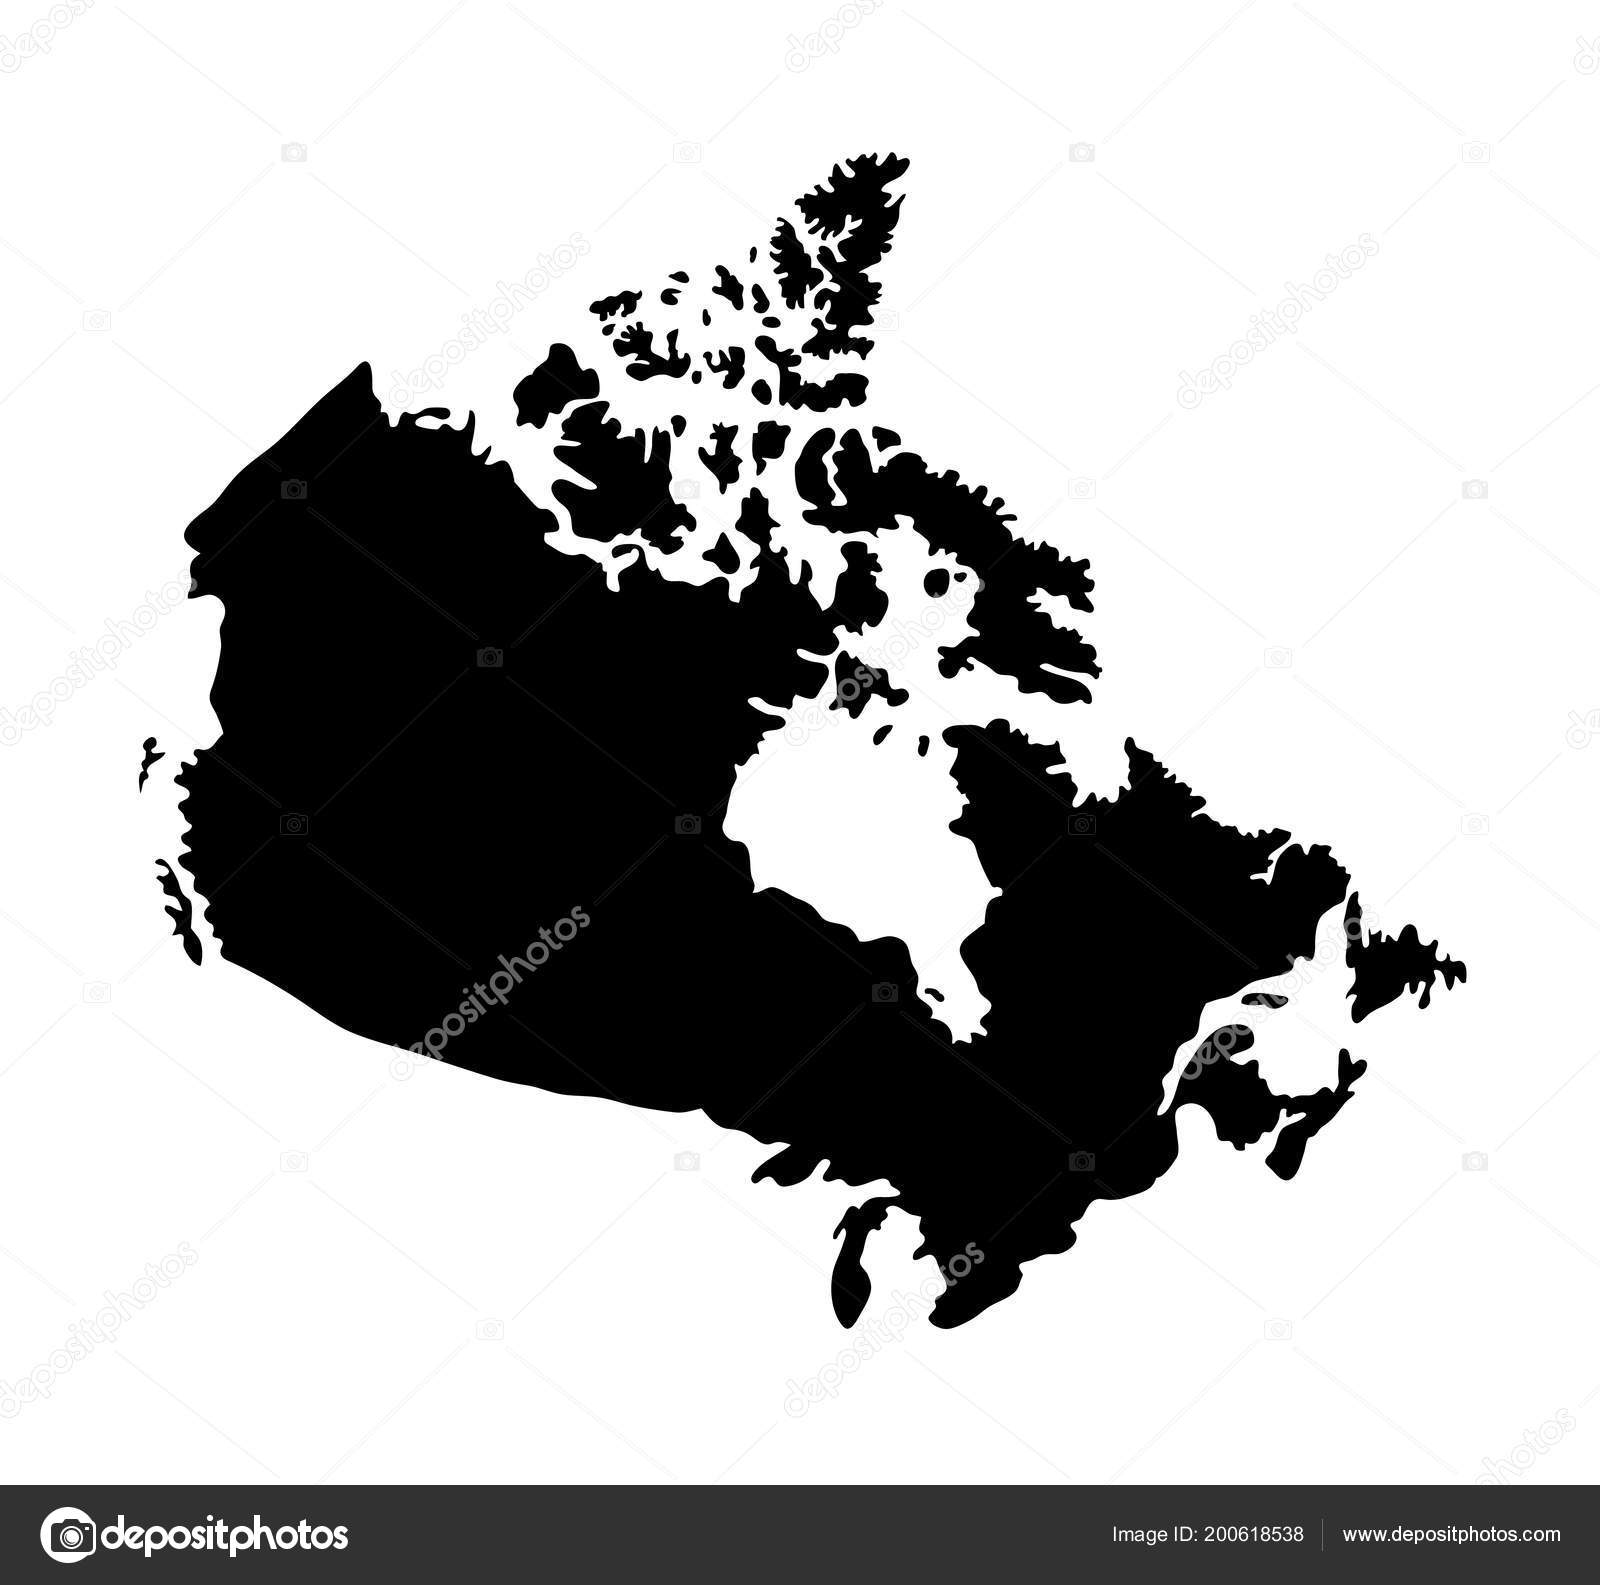 Map Of Canada Silhouette.Map Canada Good Use Symbol Logo Web Icon Mascot Sign Stock Vector